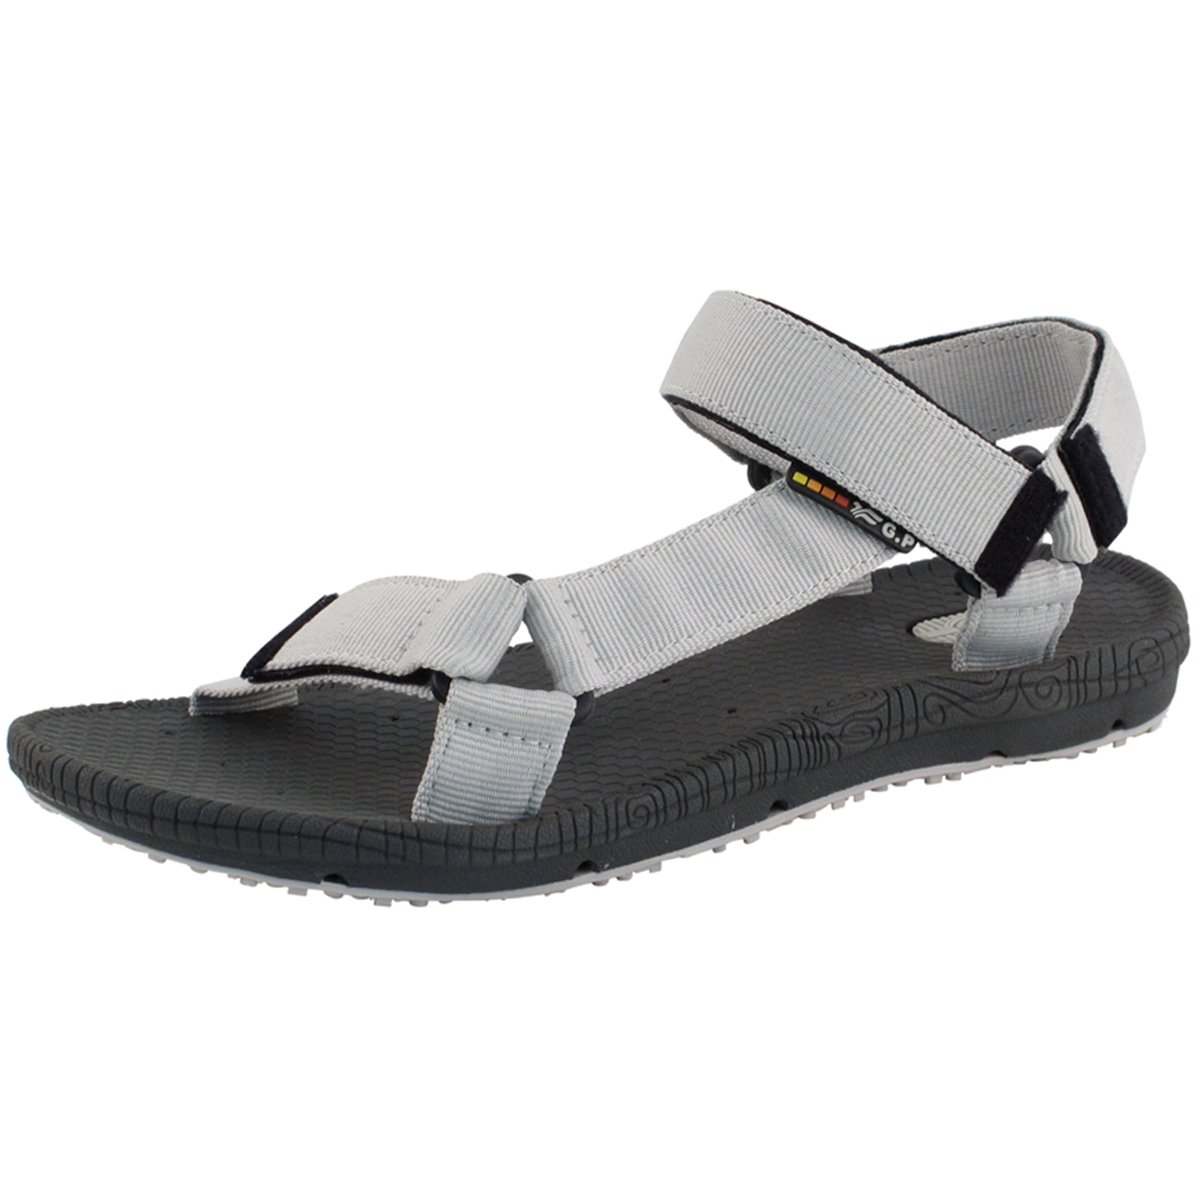 Gold Pigeon Shoes GP5931 Light Weight Adjustable Outdoor Water Sling Back Sandals for Men & Women B01N6SWCUO EU44: Men 11/11.5 (292.4mm)|Grey